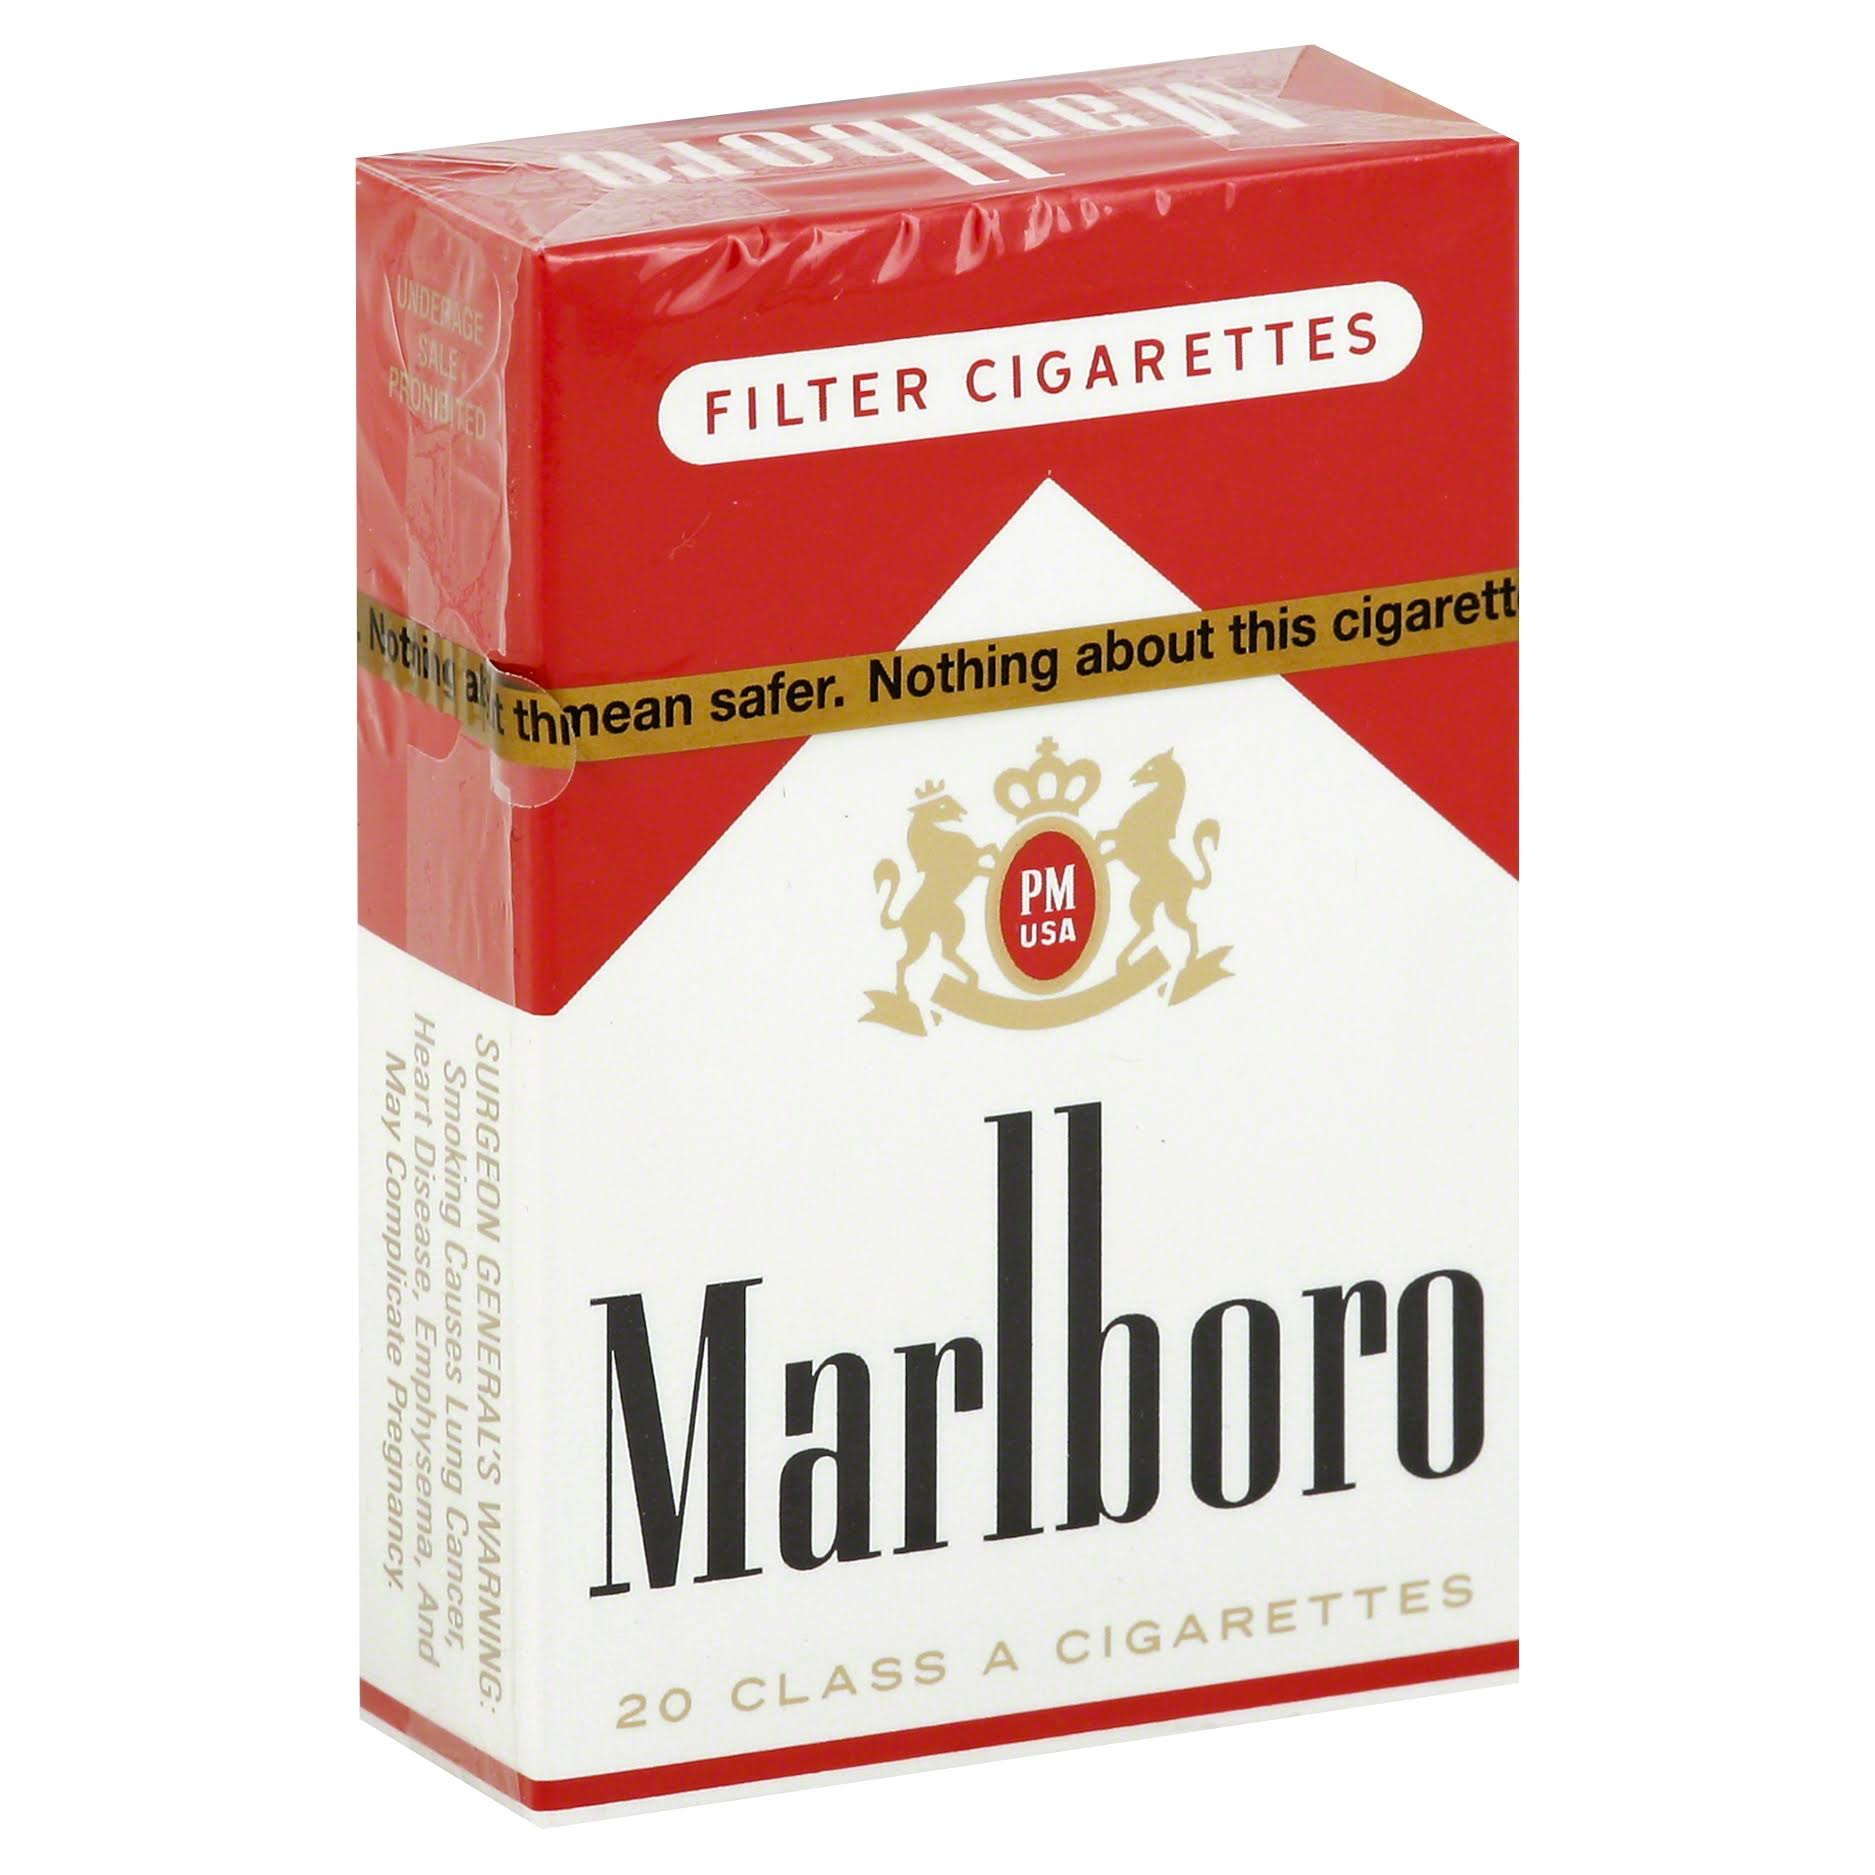 Marlboro Cigarettes, Filter - 20 cigarettes